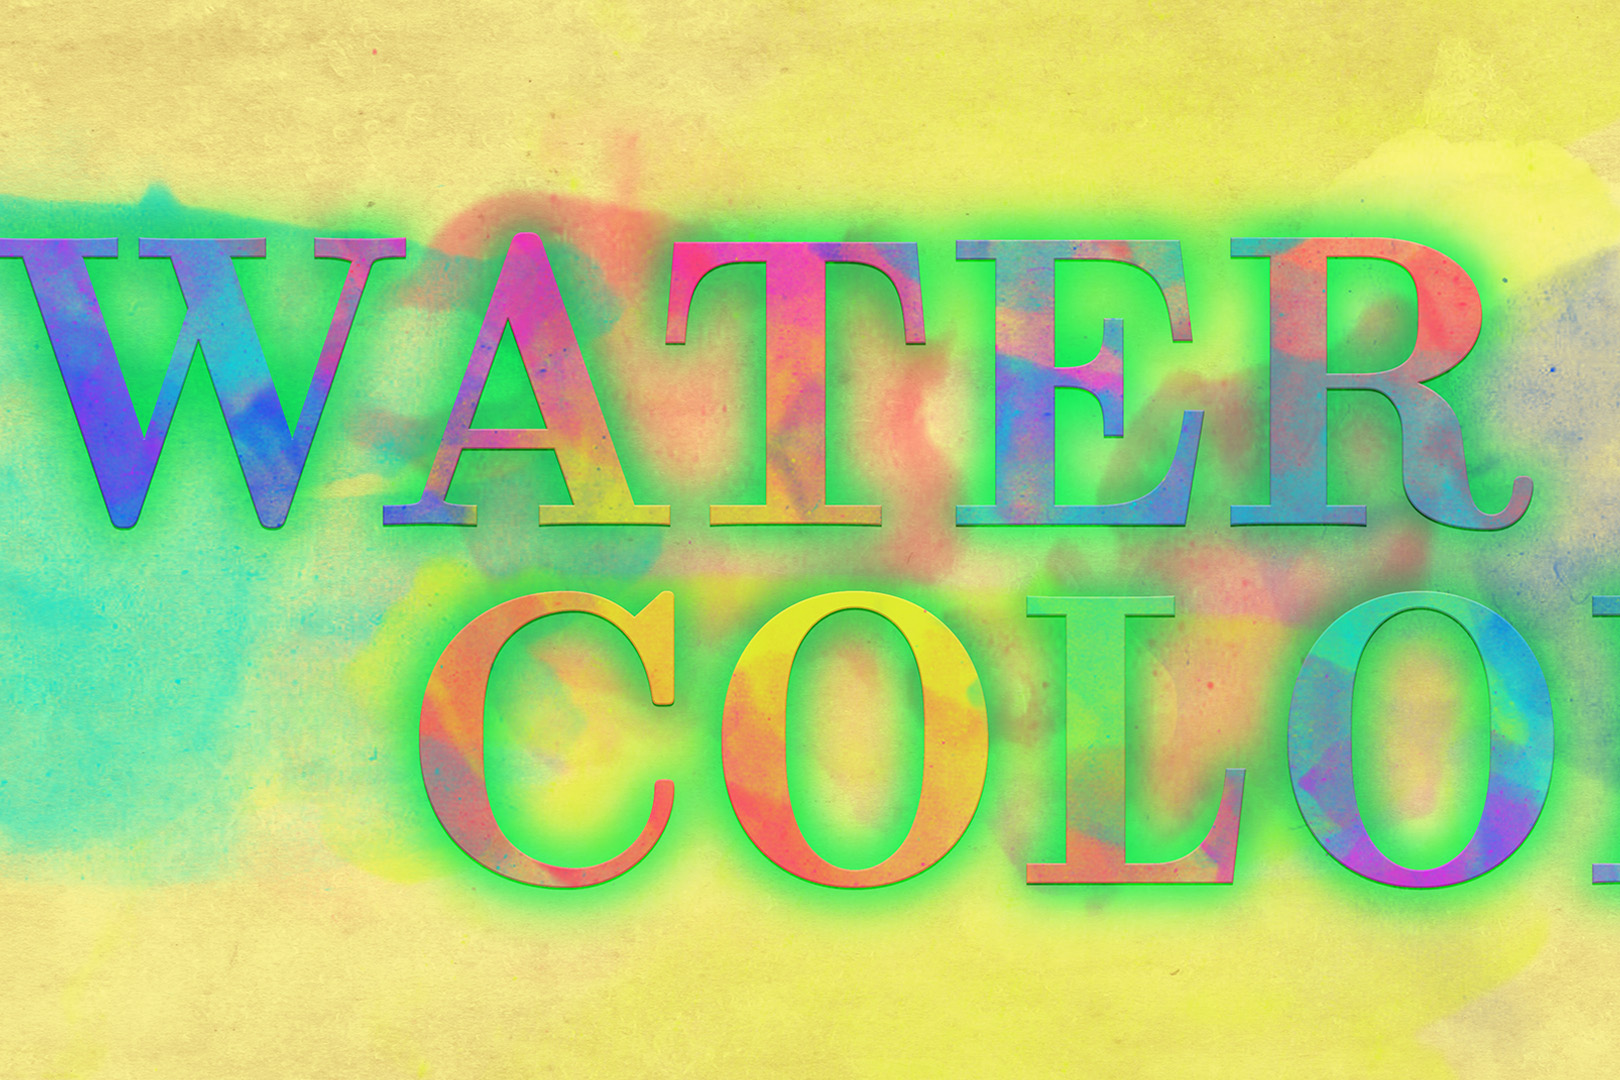 watercolor effect photoshop tutorial